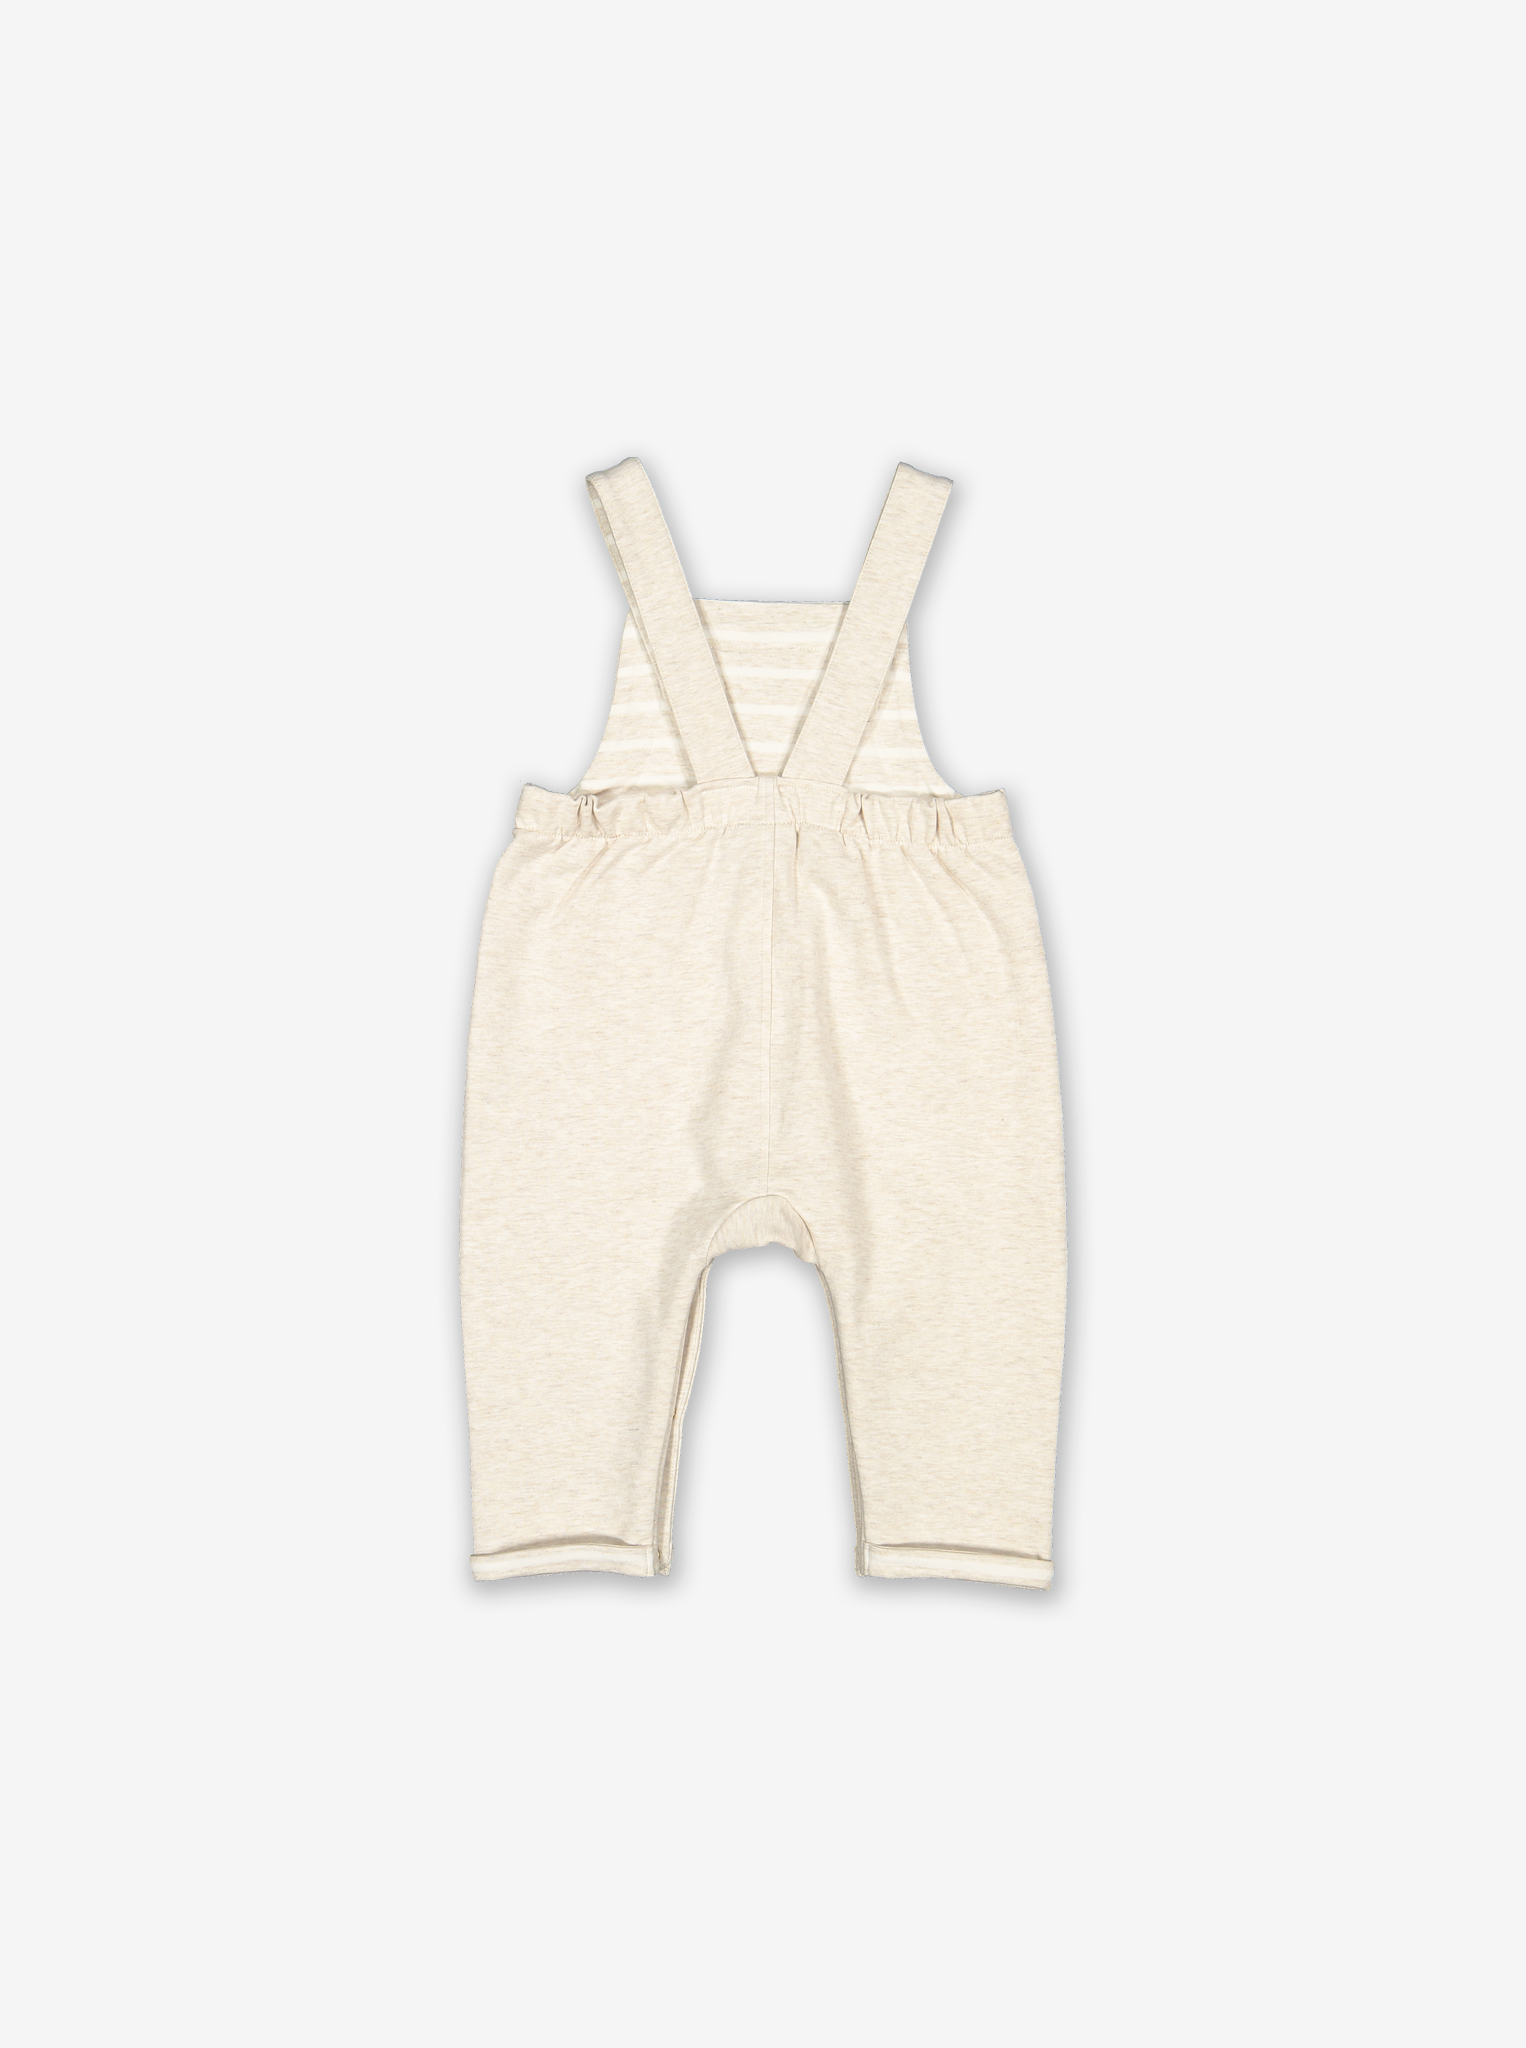 Embroidered Baby Dungarees-Unisex-0-1y-White